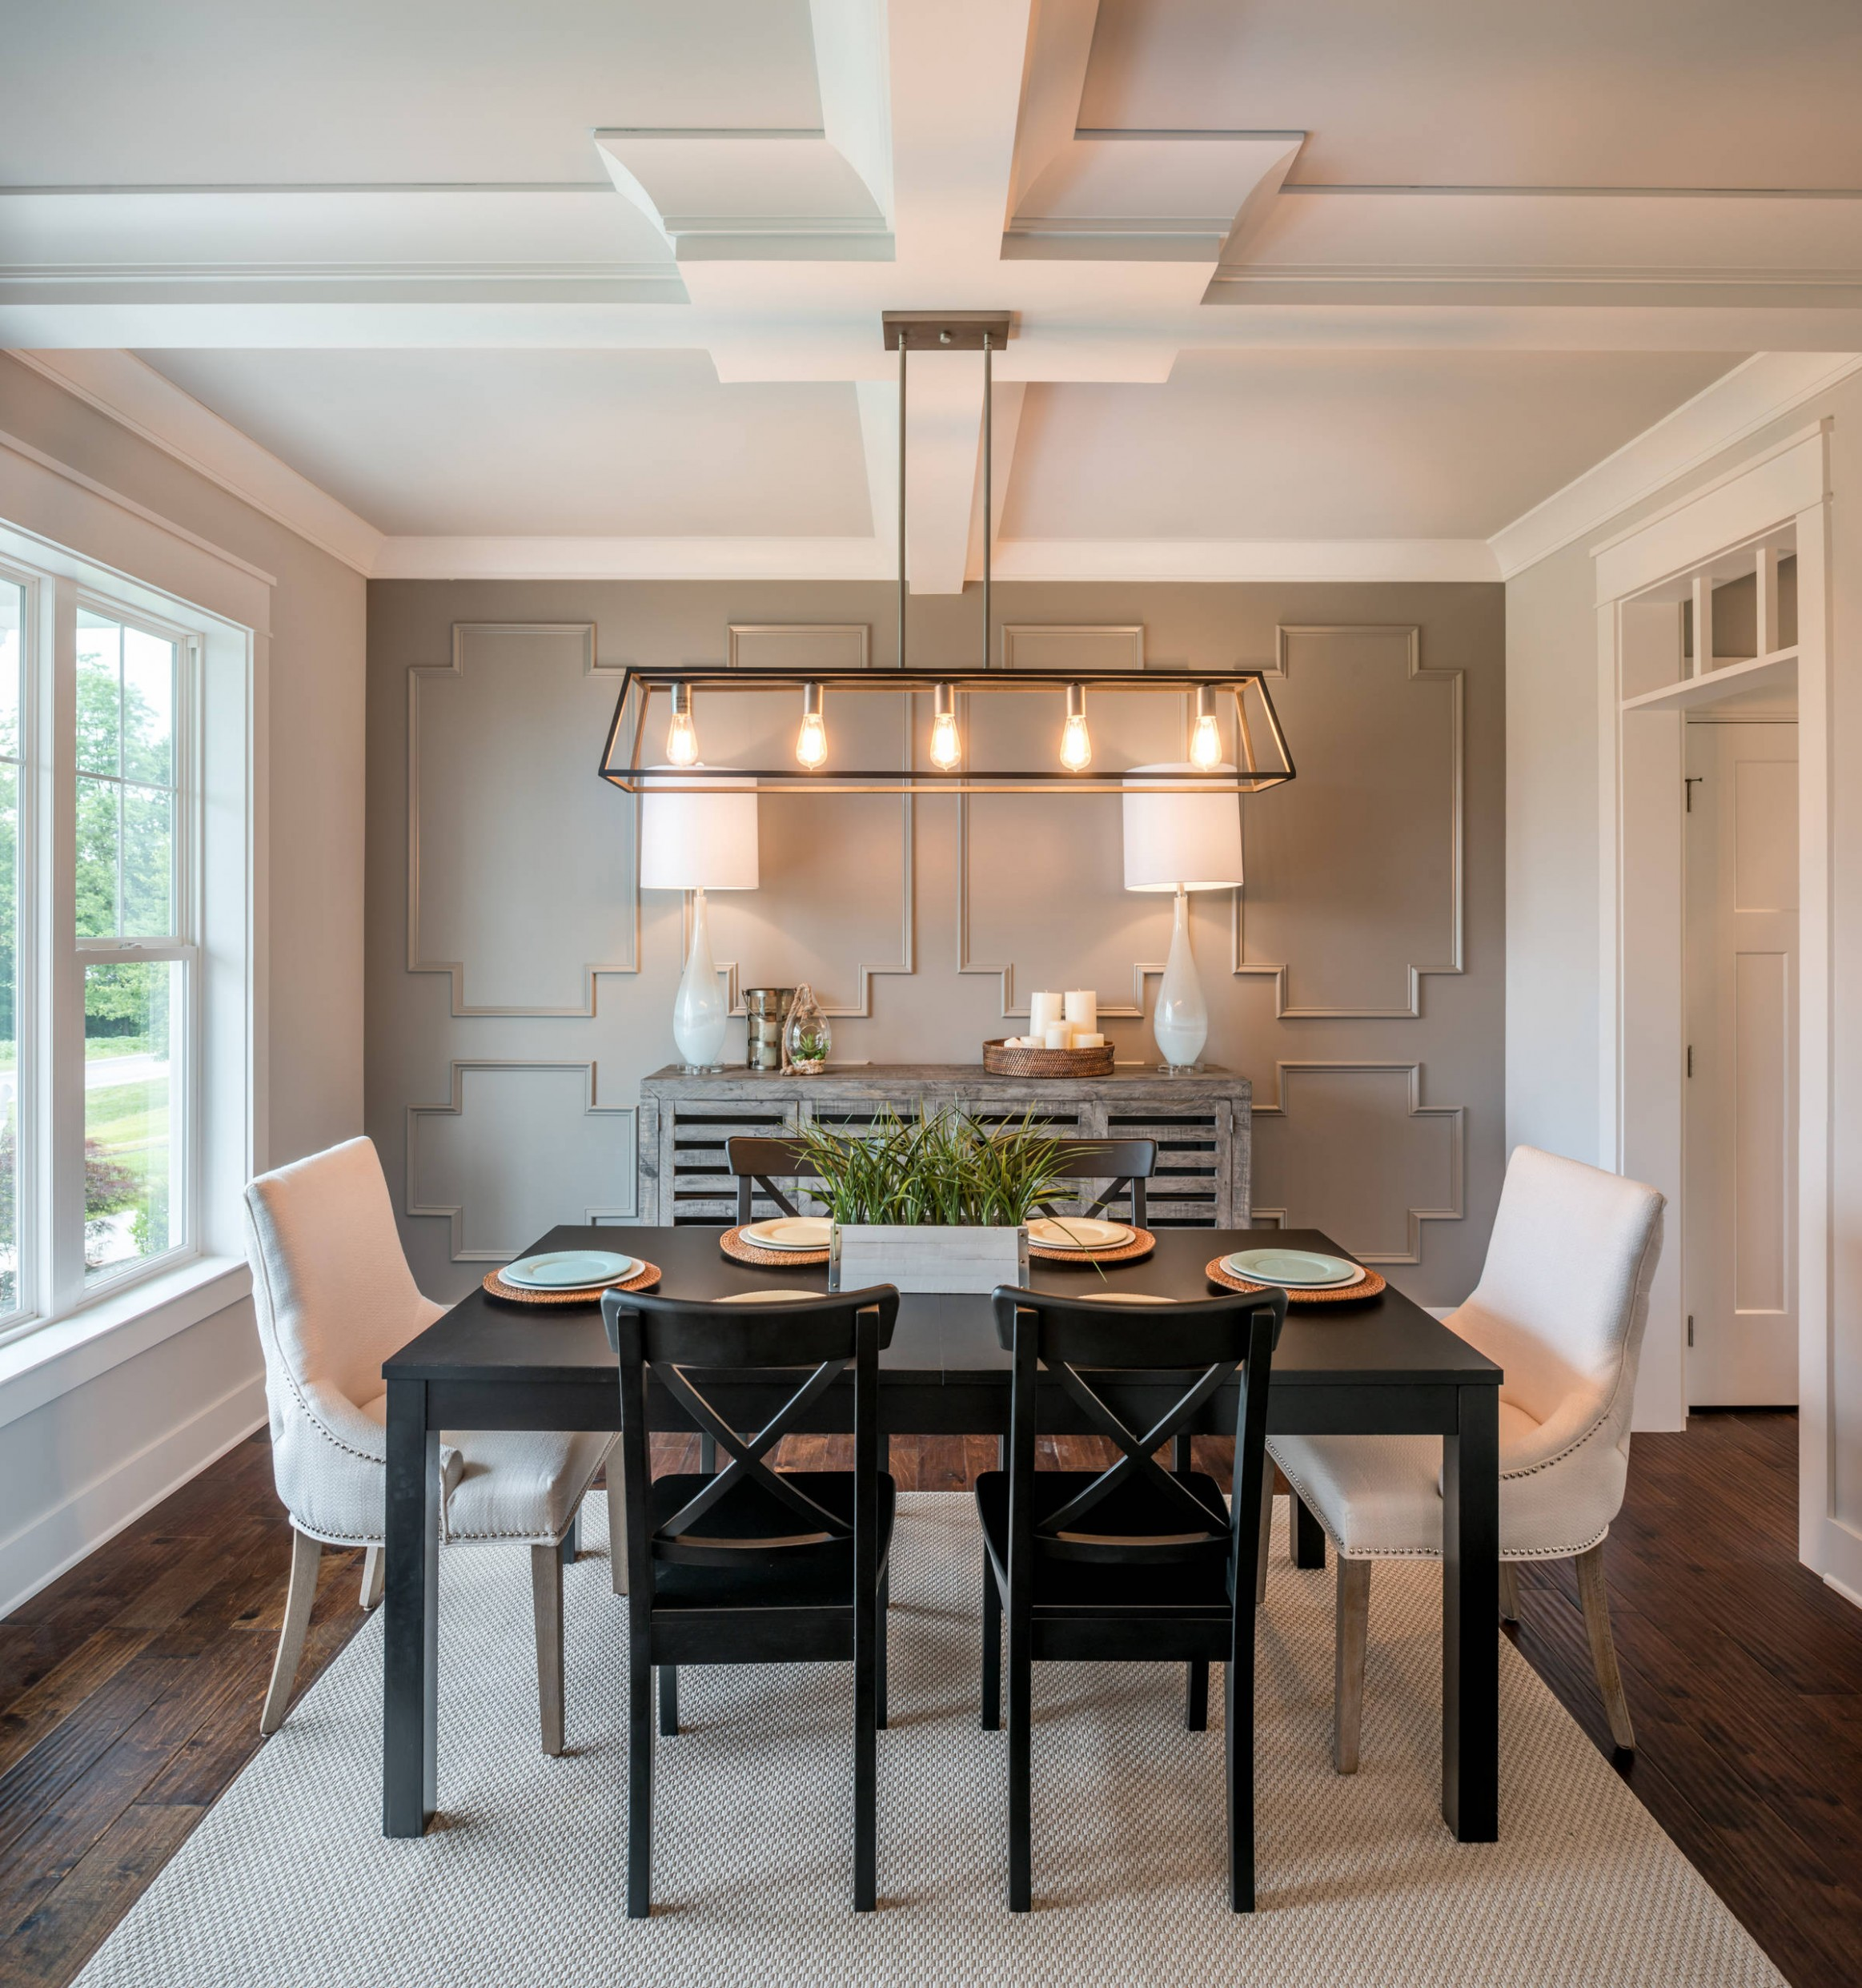 10 Beautiful Farmhouse Dining Room Pictures & Ideas - October  - Dining Room Ideas Modern Farmhouse